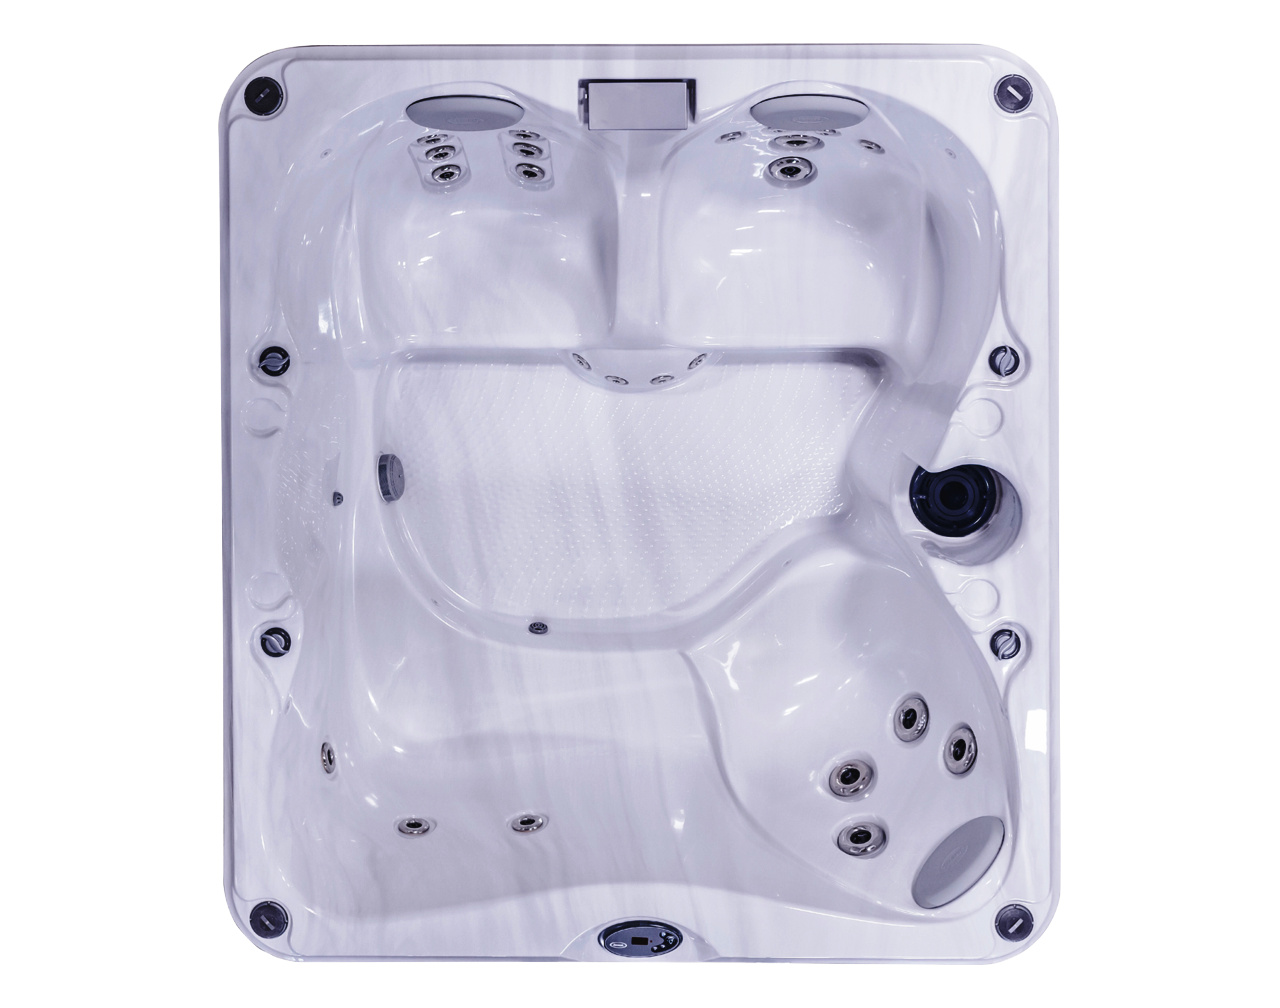 Jacuzzi J-225 | Just Hot Tubs